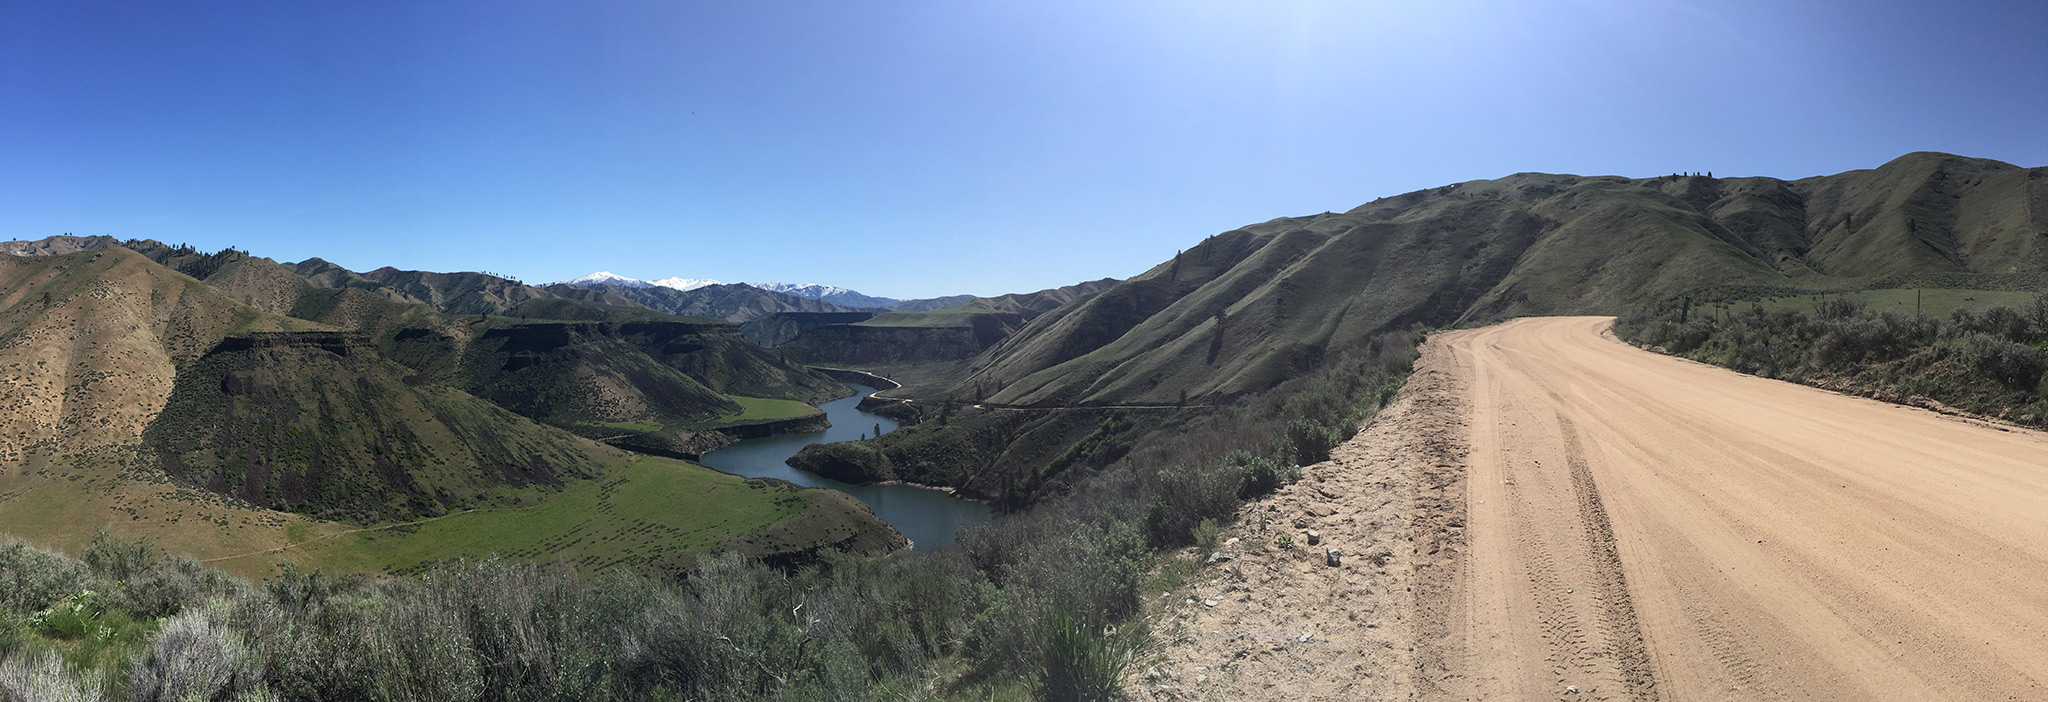 [Map Point 2]  After climbing to the canyon rim you are rewarded with this million-dollar, mini-Grand Canyon-like view of the South Fork of the Boise River. (Click on Image to Enlarge.)